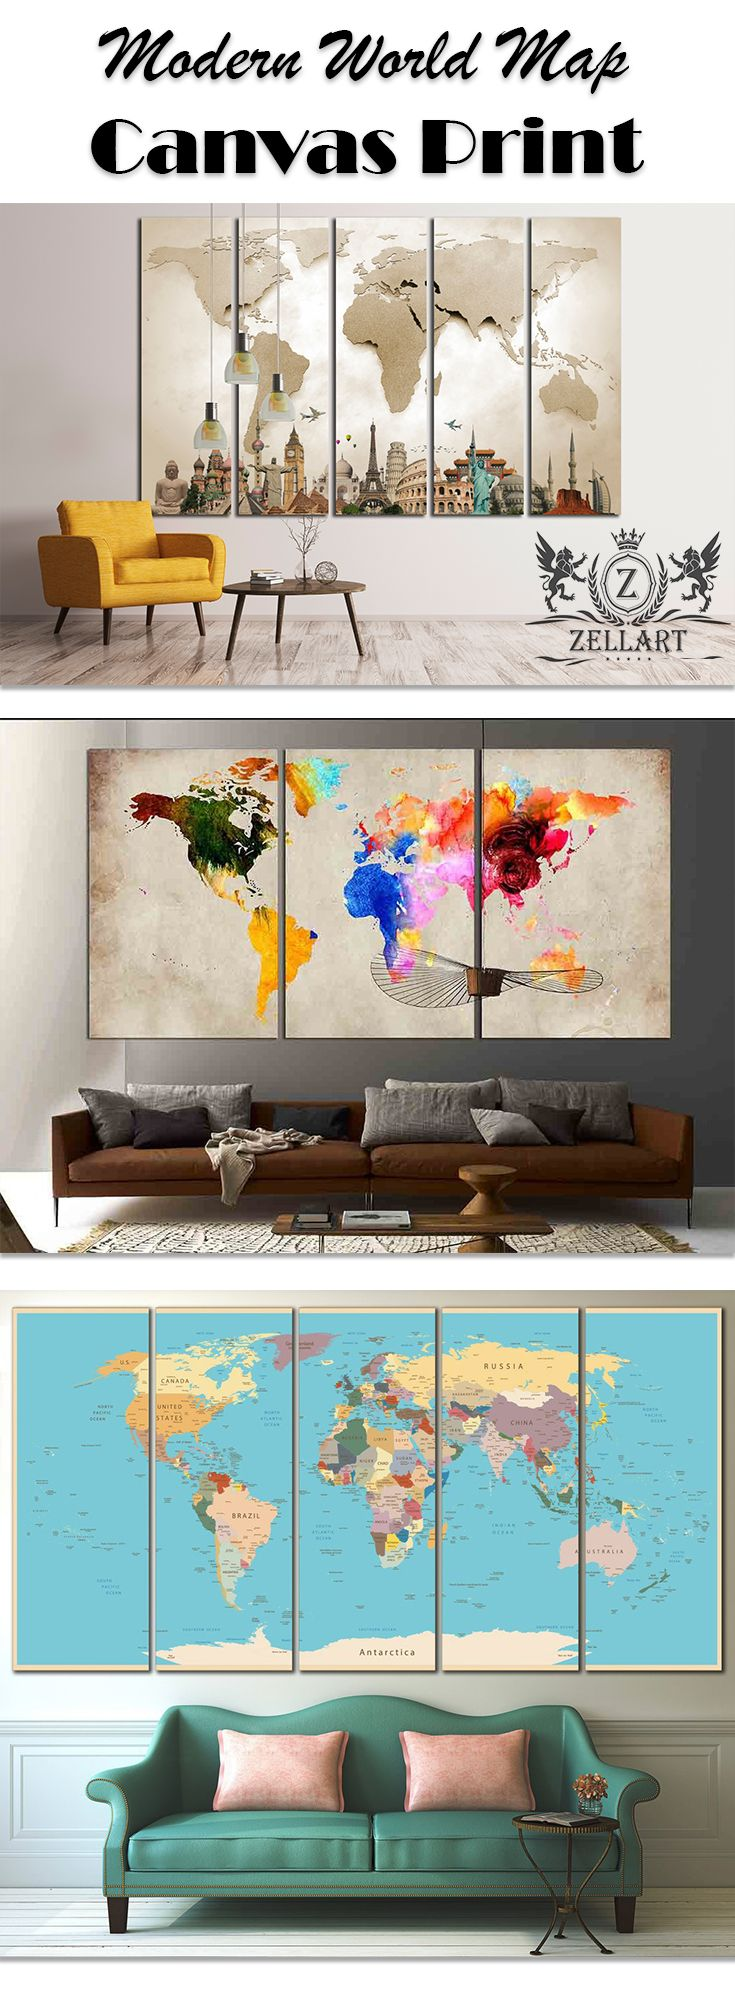 Are you looking for something aesthetic appealing to your eyes? Inspired by the beautiful colors and watercolor art, we have presented our exclusive World Map Arts